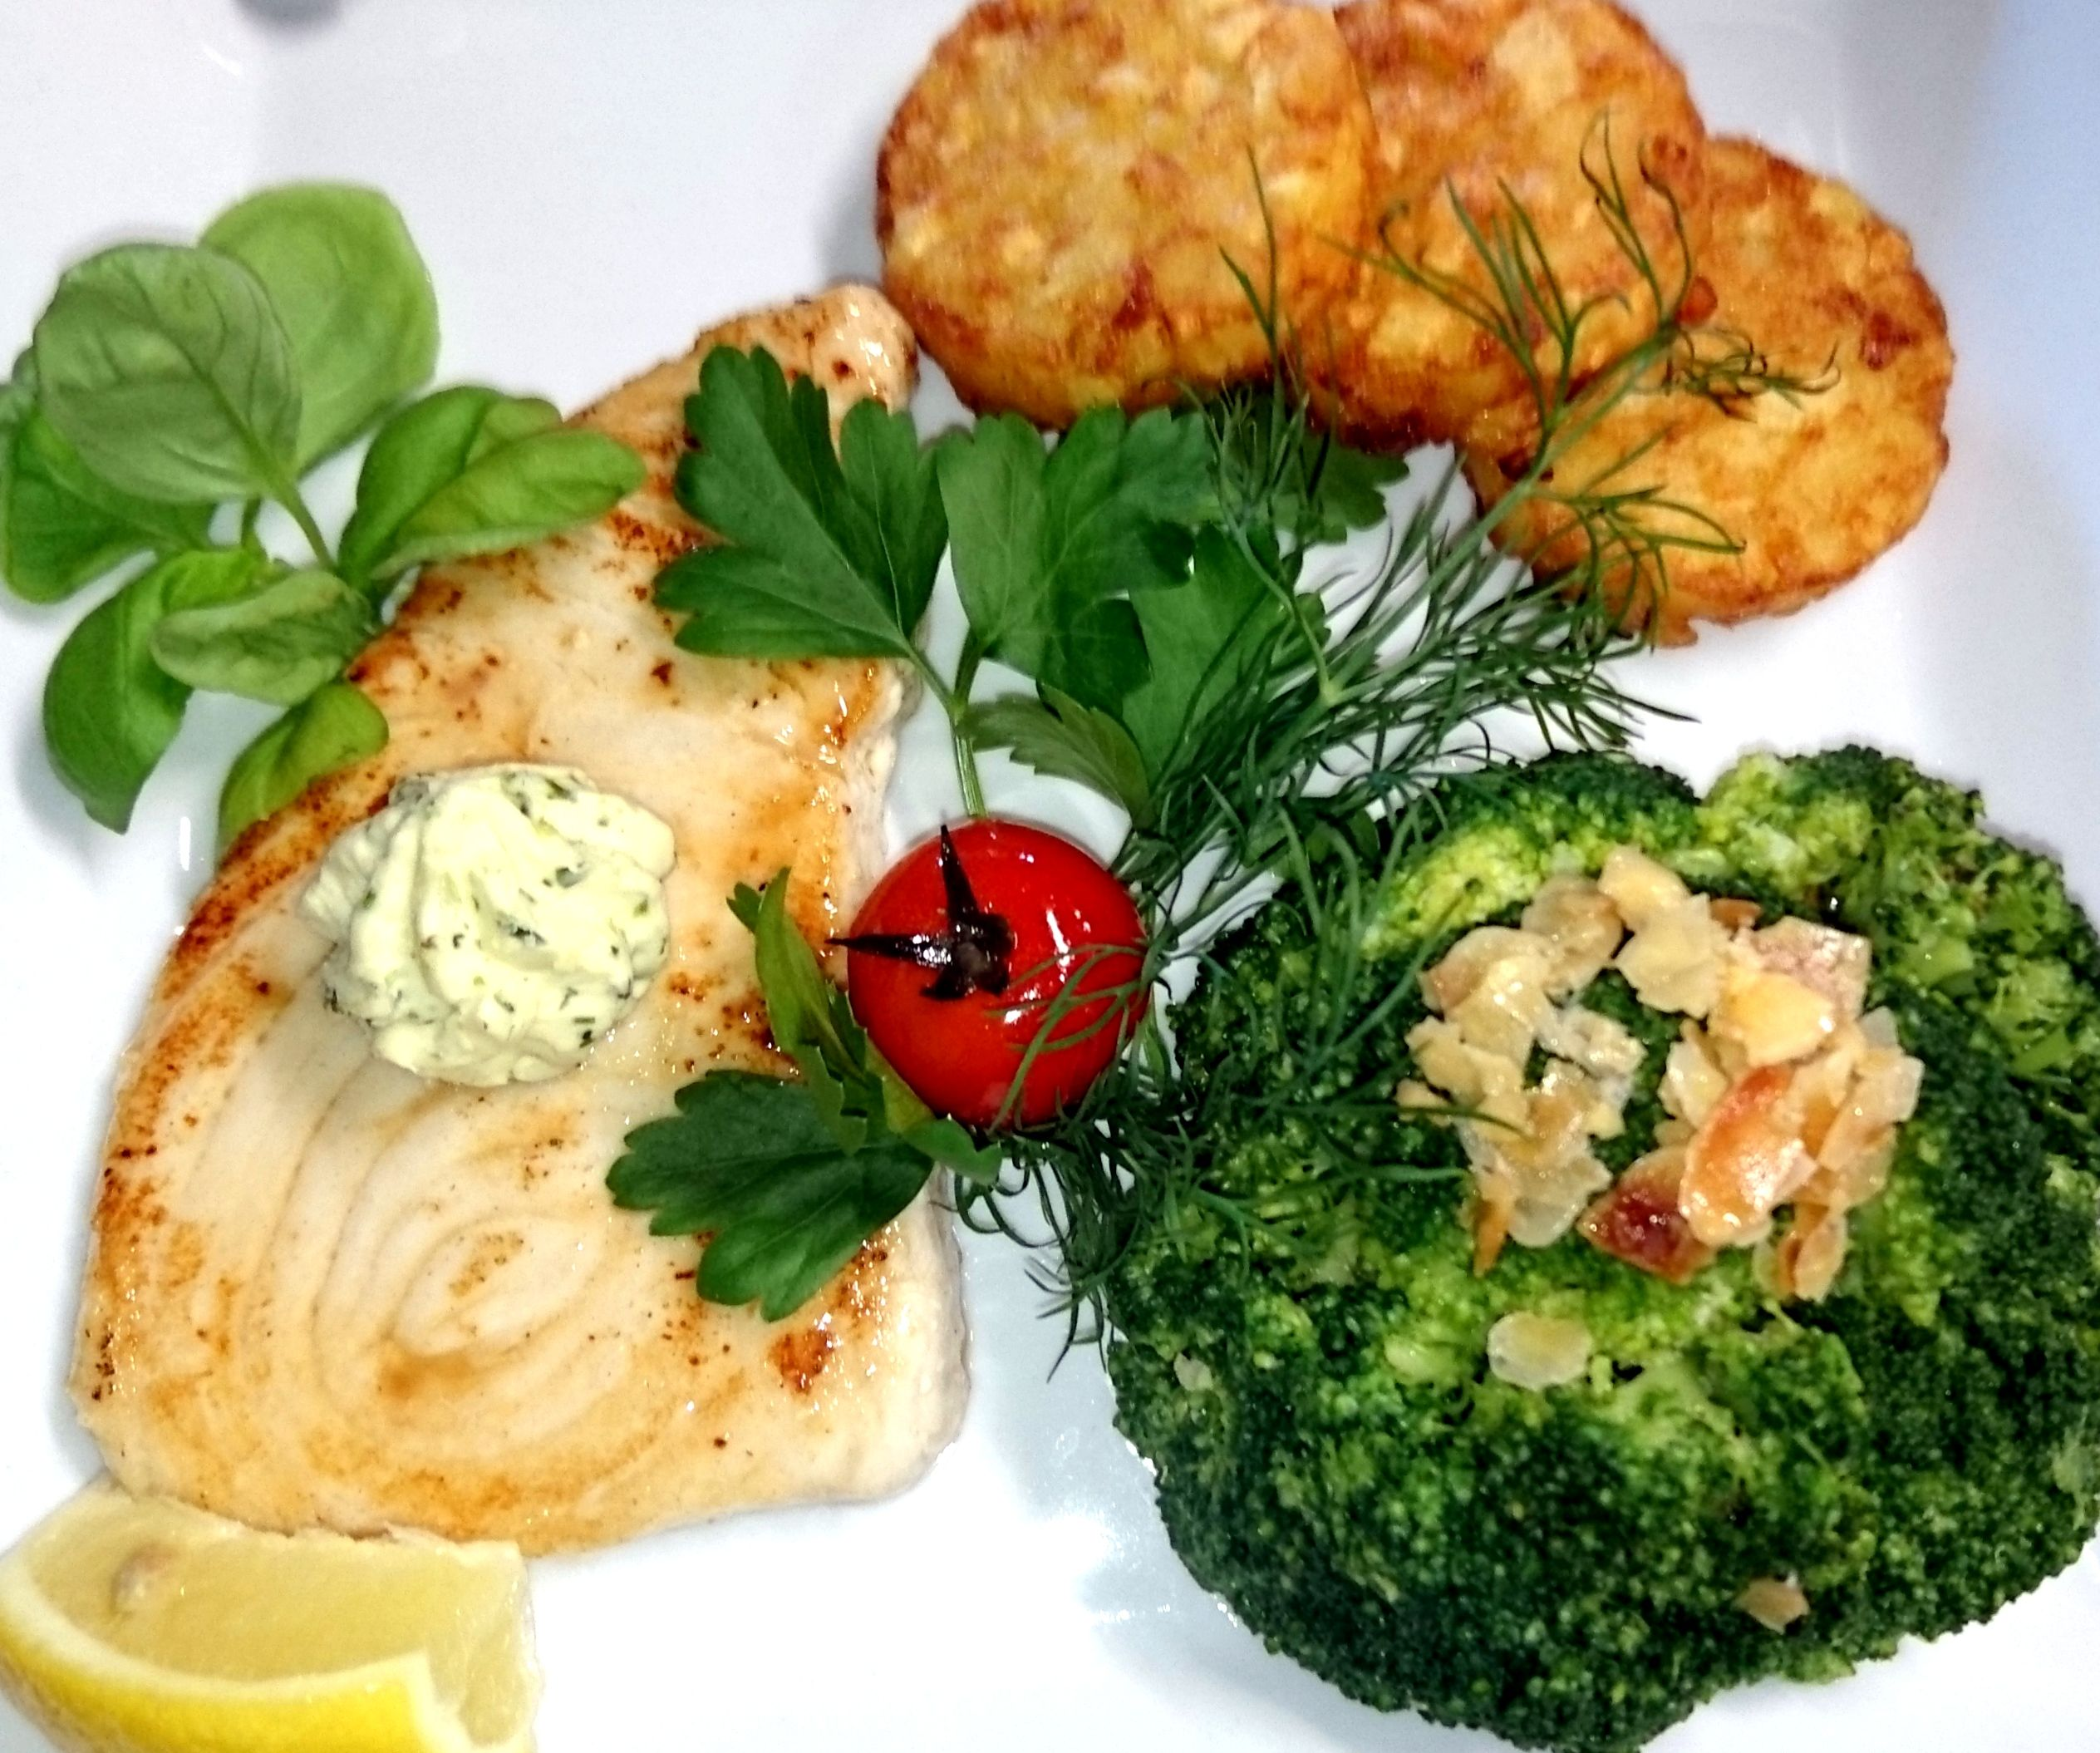 Swordfish fillet fried in herb butter, almond broccoli and hash Browns